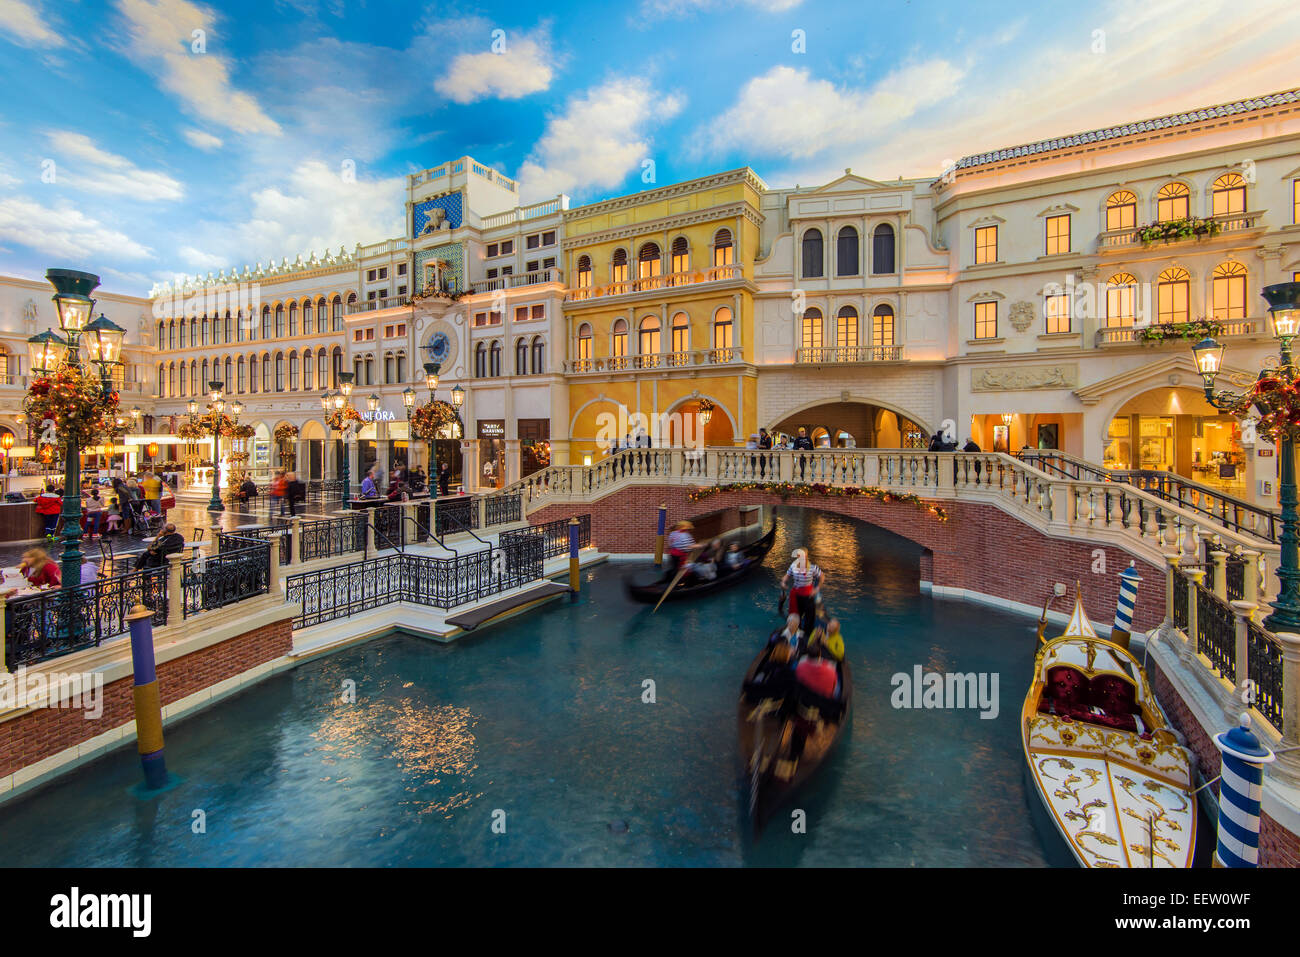 St. Mark's Square at the Grand Canal Shoppes, The Venetian Resort Hotel and Casino, Las Vegas, Nevada, USA - Stock Image